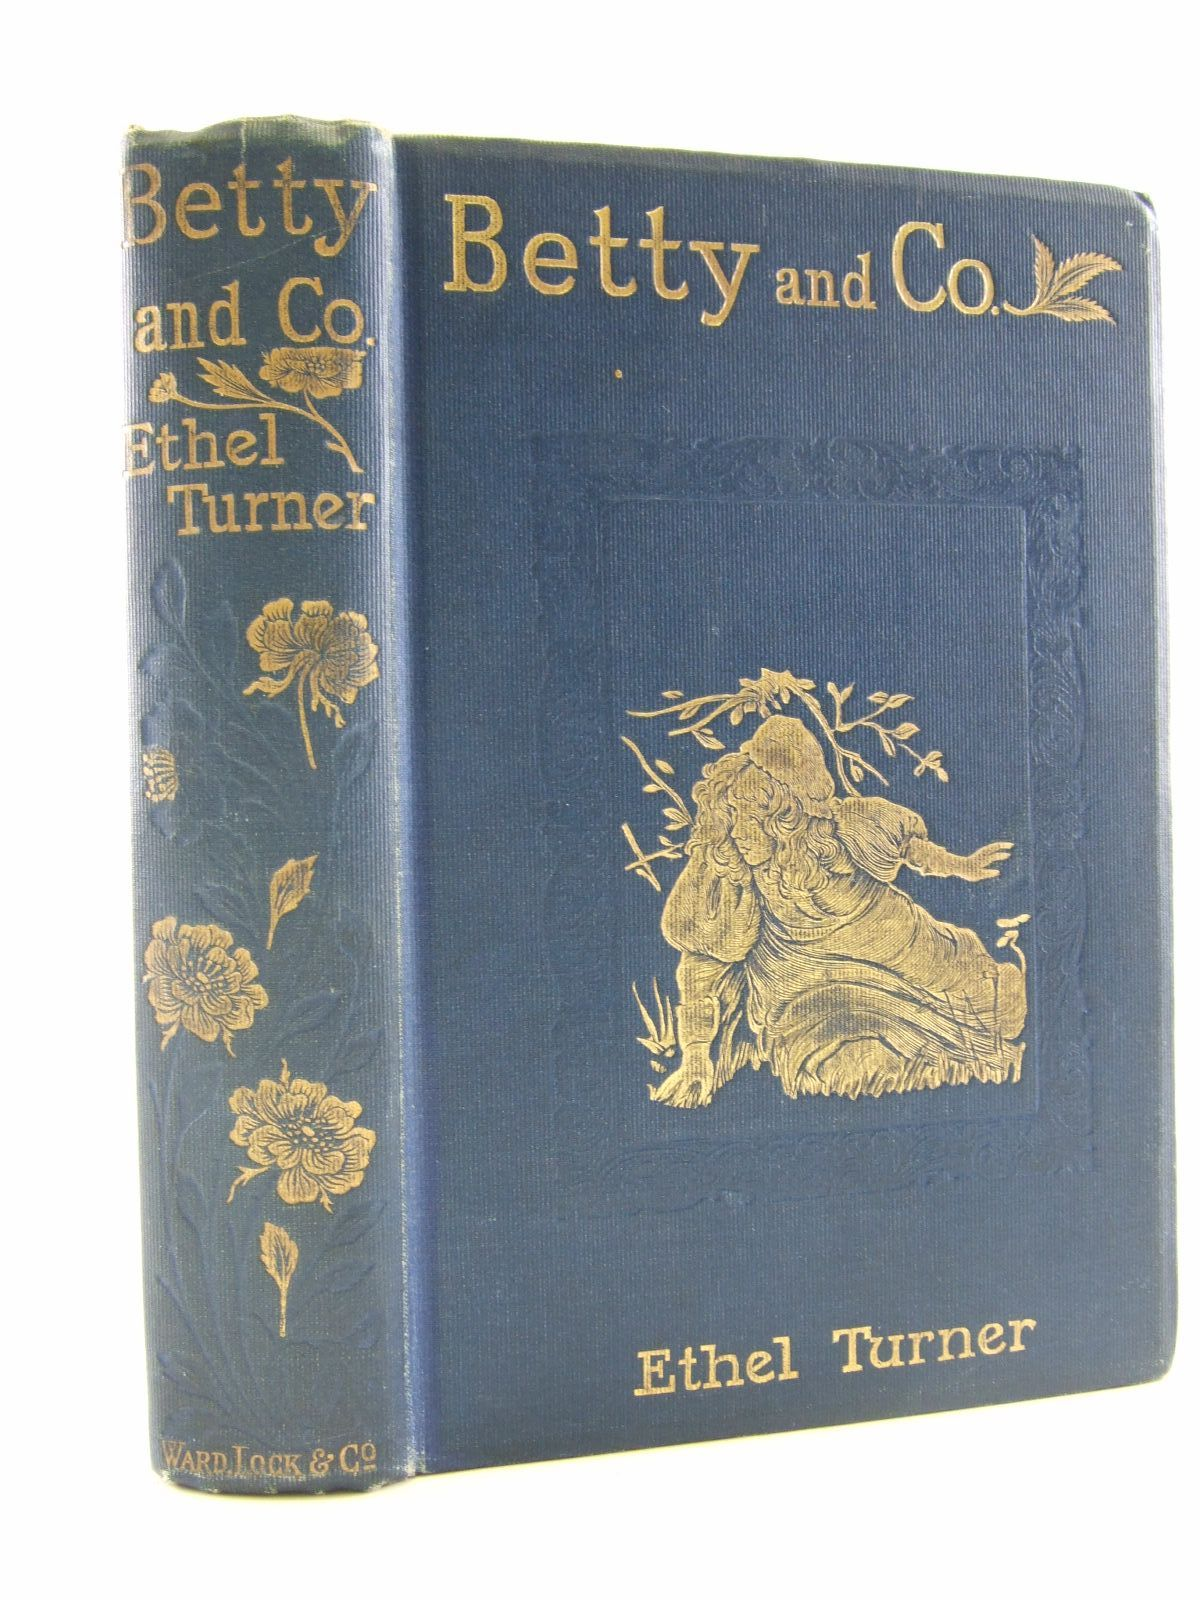 Photo of BETTY & CO. written by Turner, Ethel published by Ward Lock & Co Ltd. (STOCK CODE: 1107895)  for sale by Stella & Rose's Books